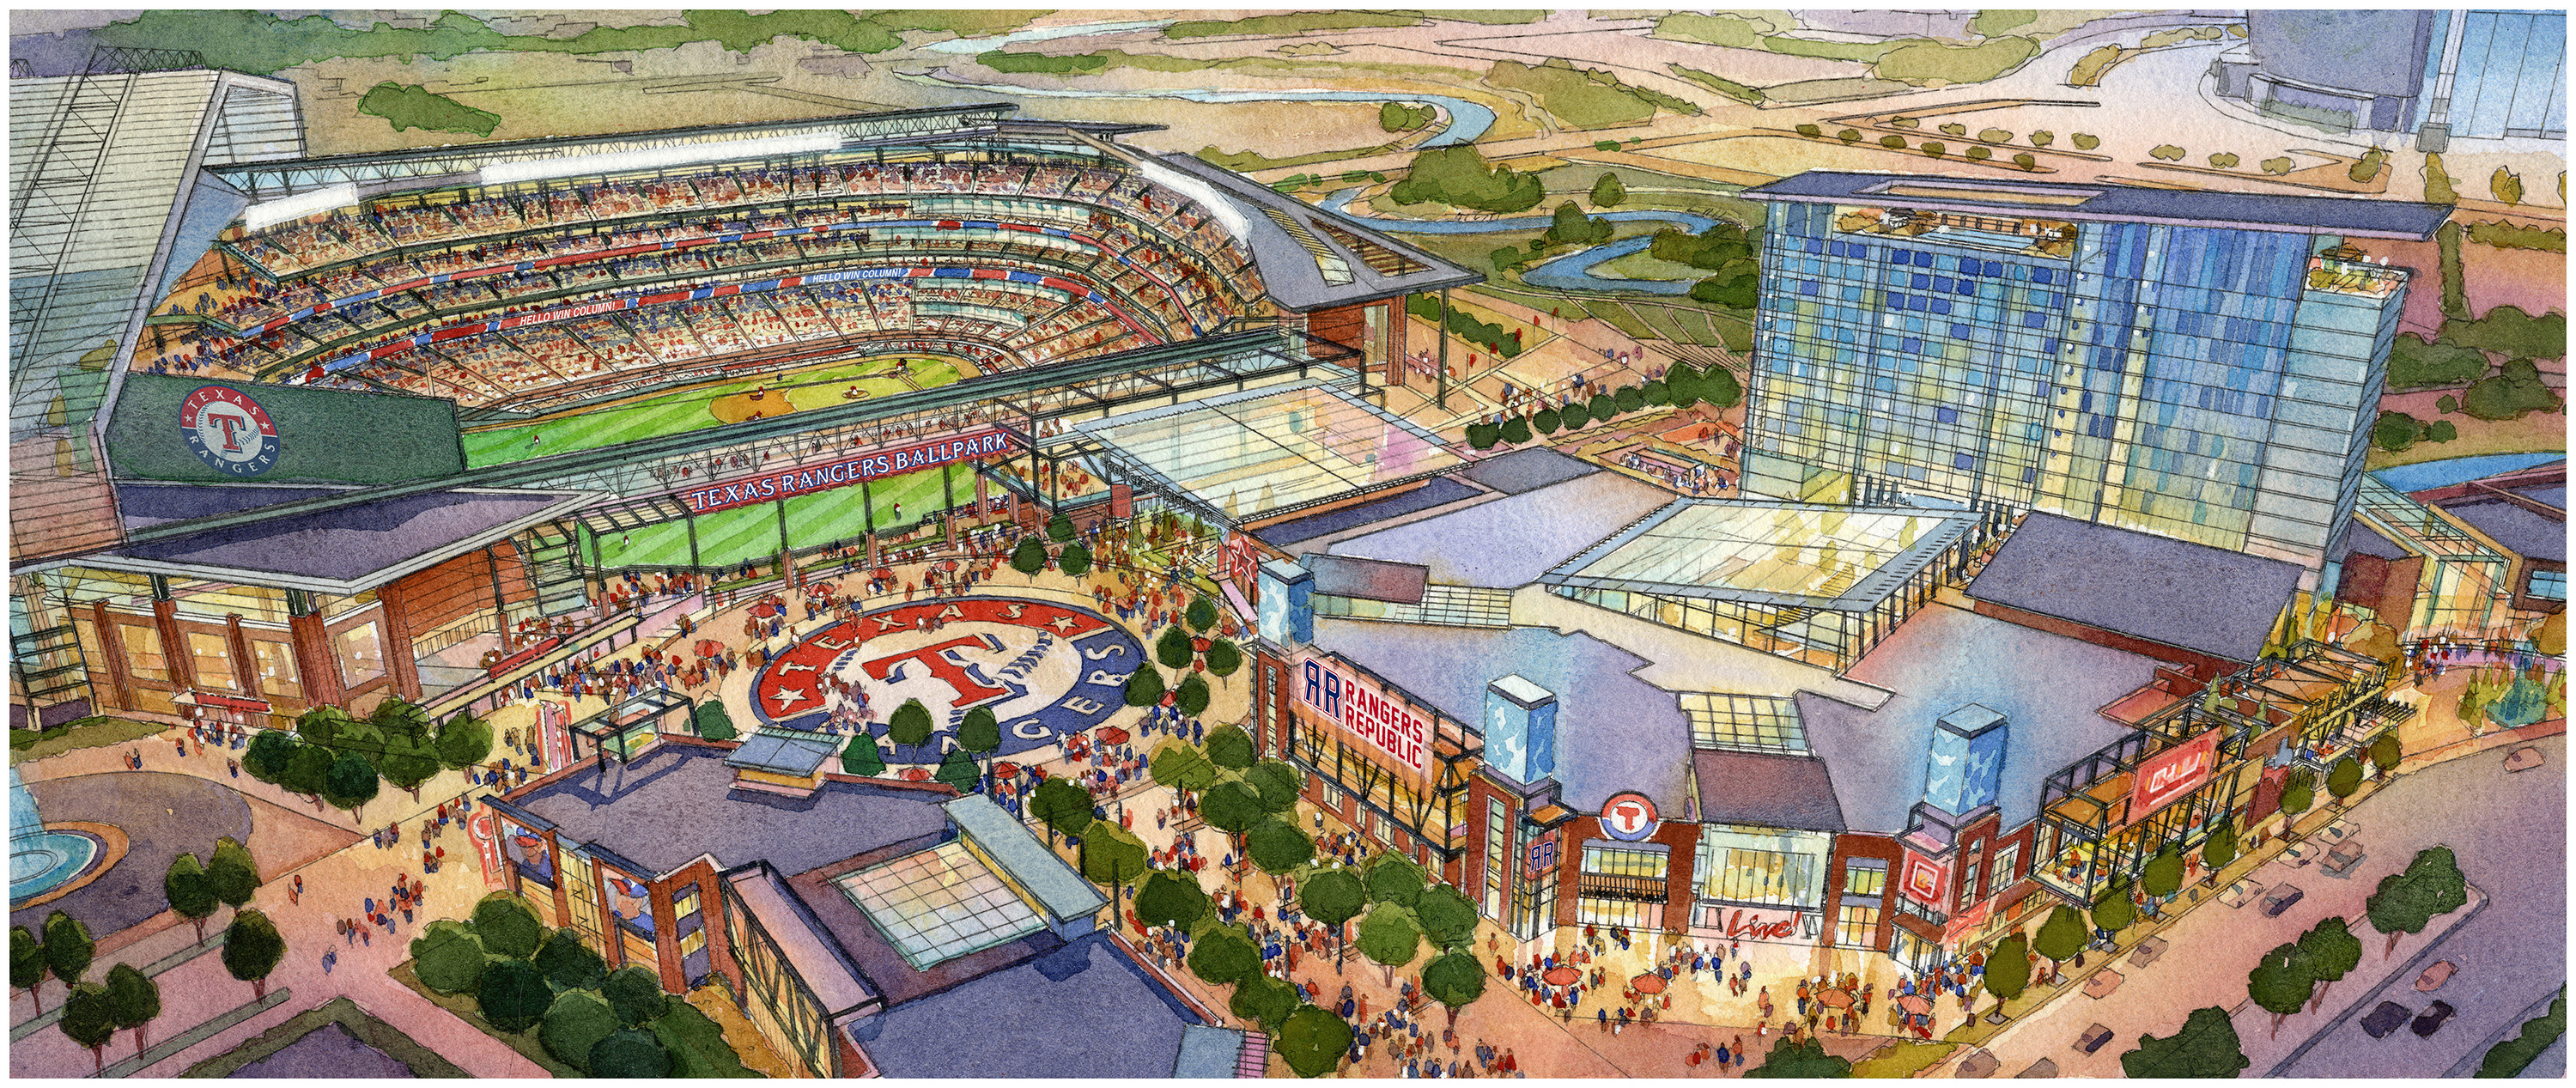 battle lines forming for texas rangers stadium election  battle lines forming for texas rangers stadium election 500 million public subsidy arlington dallas news